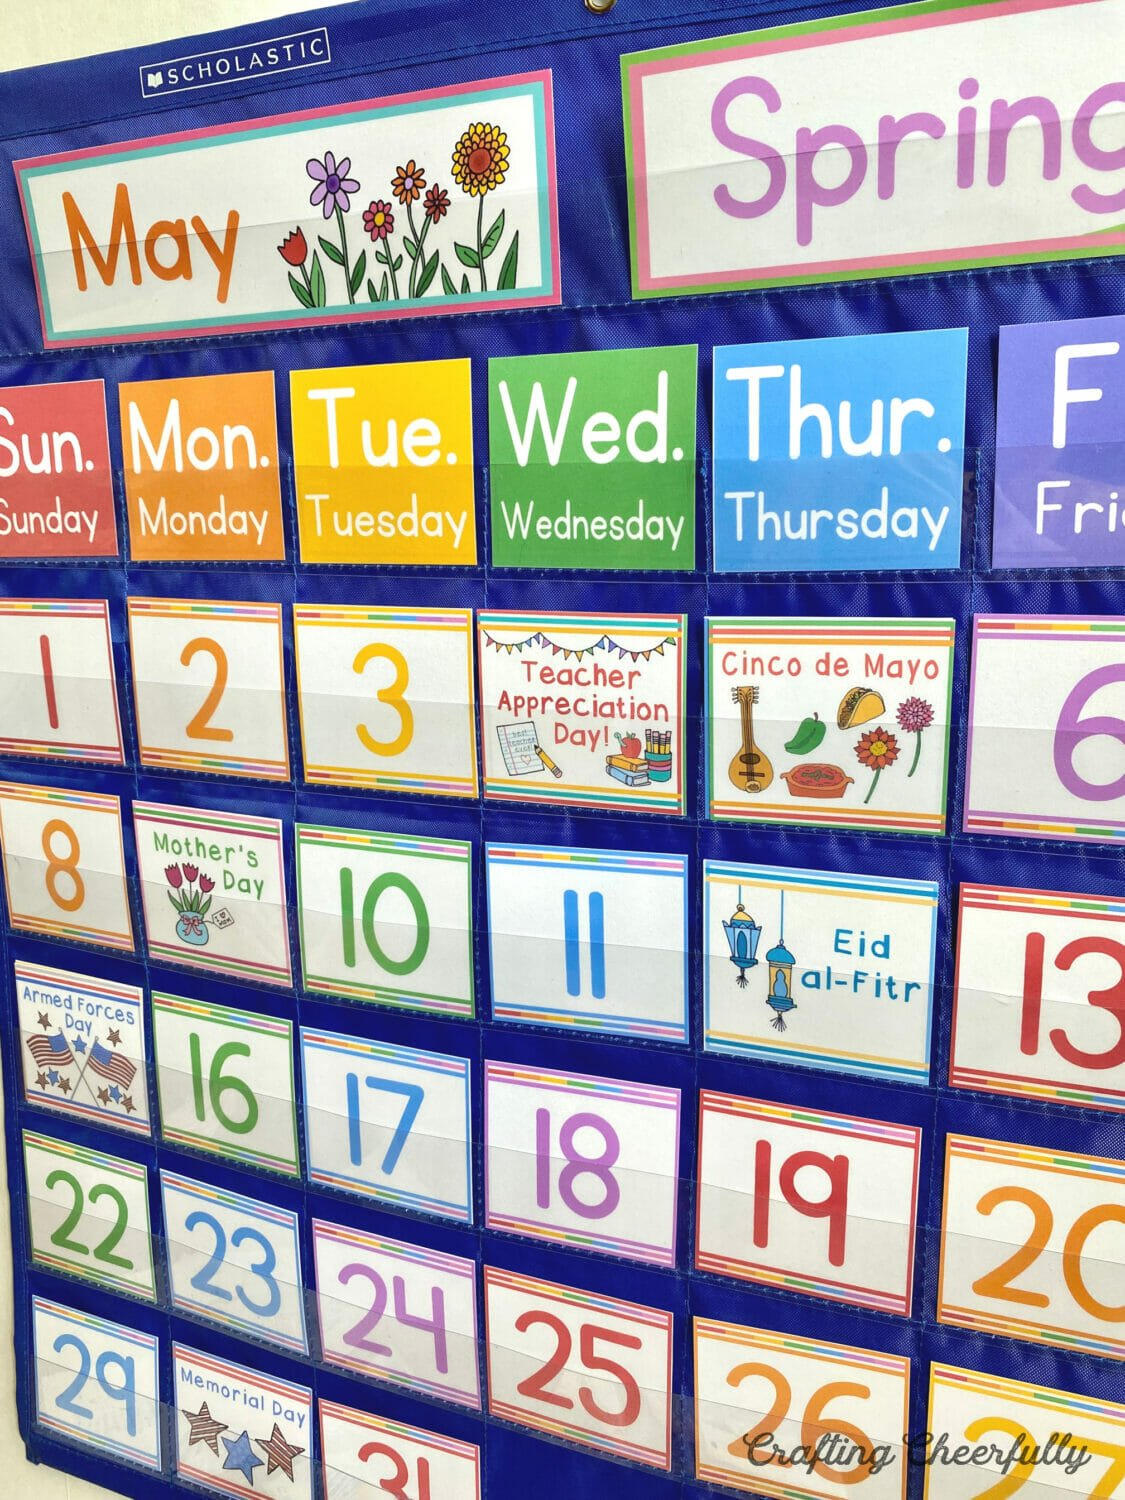 May pocket chart calendar with holidays in it